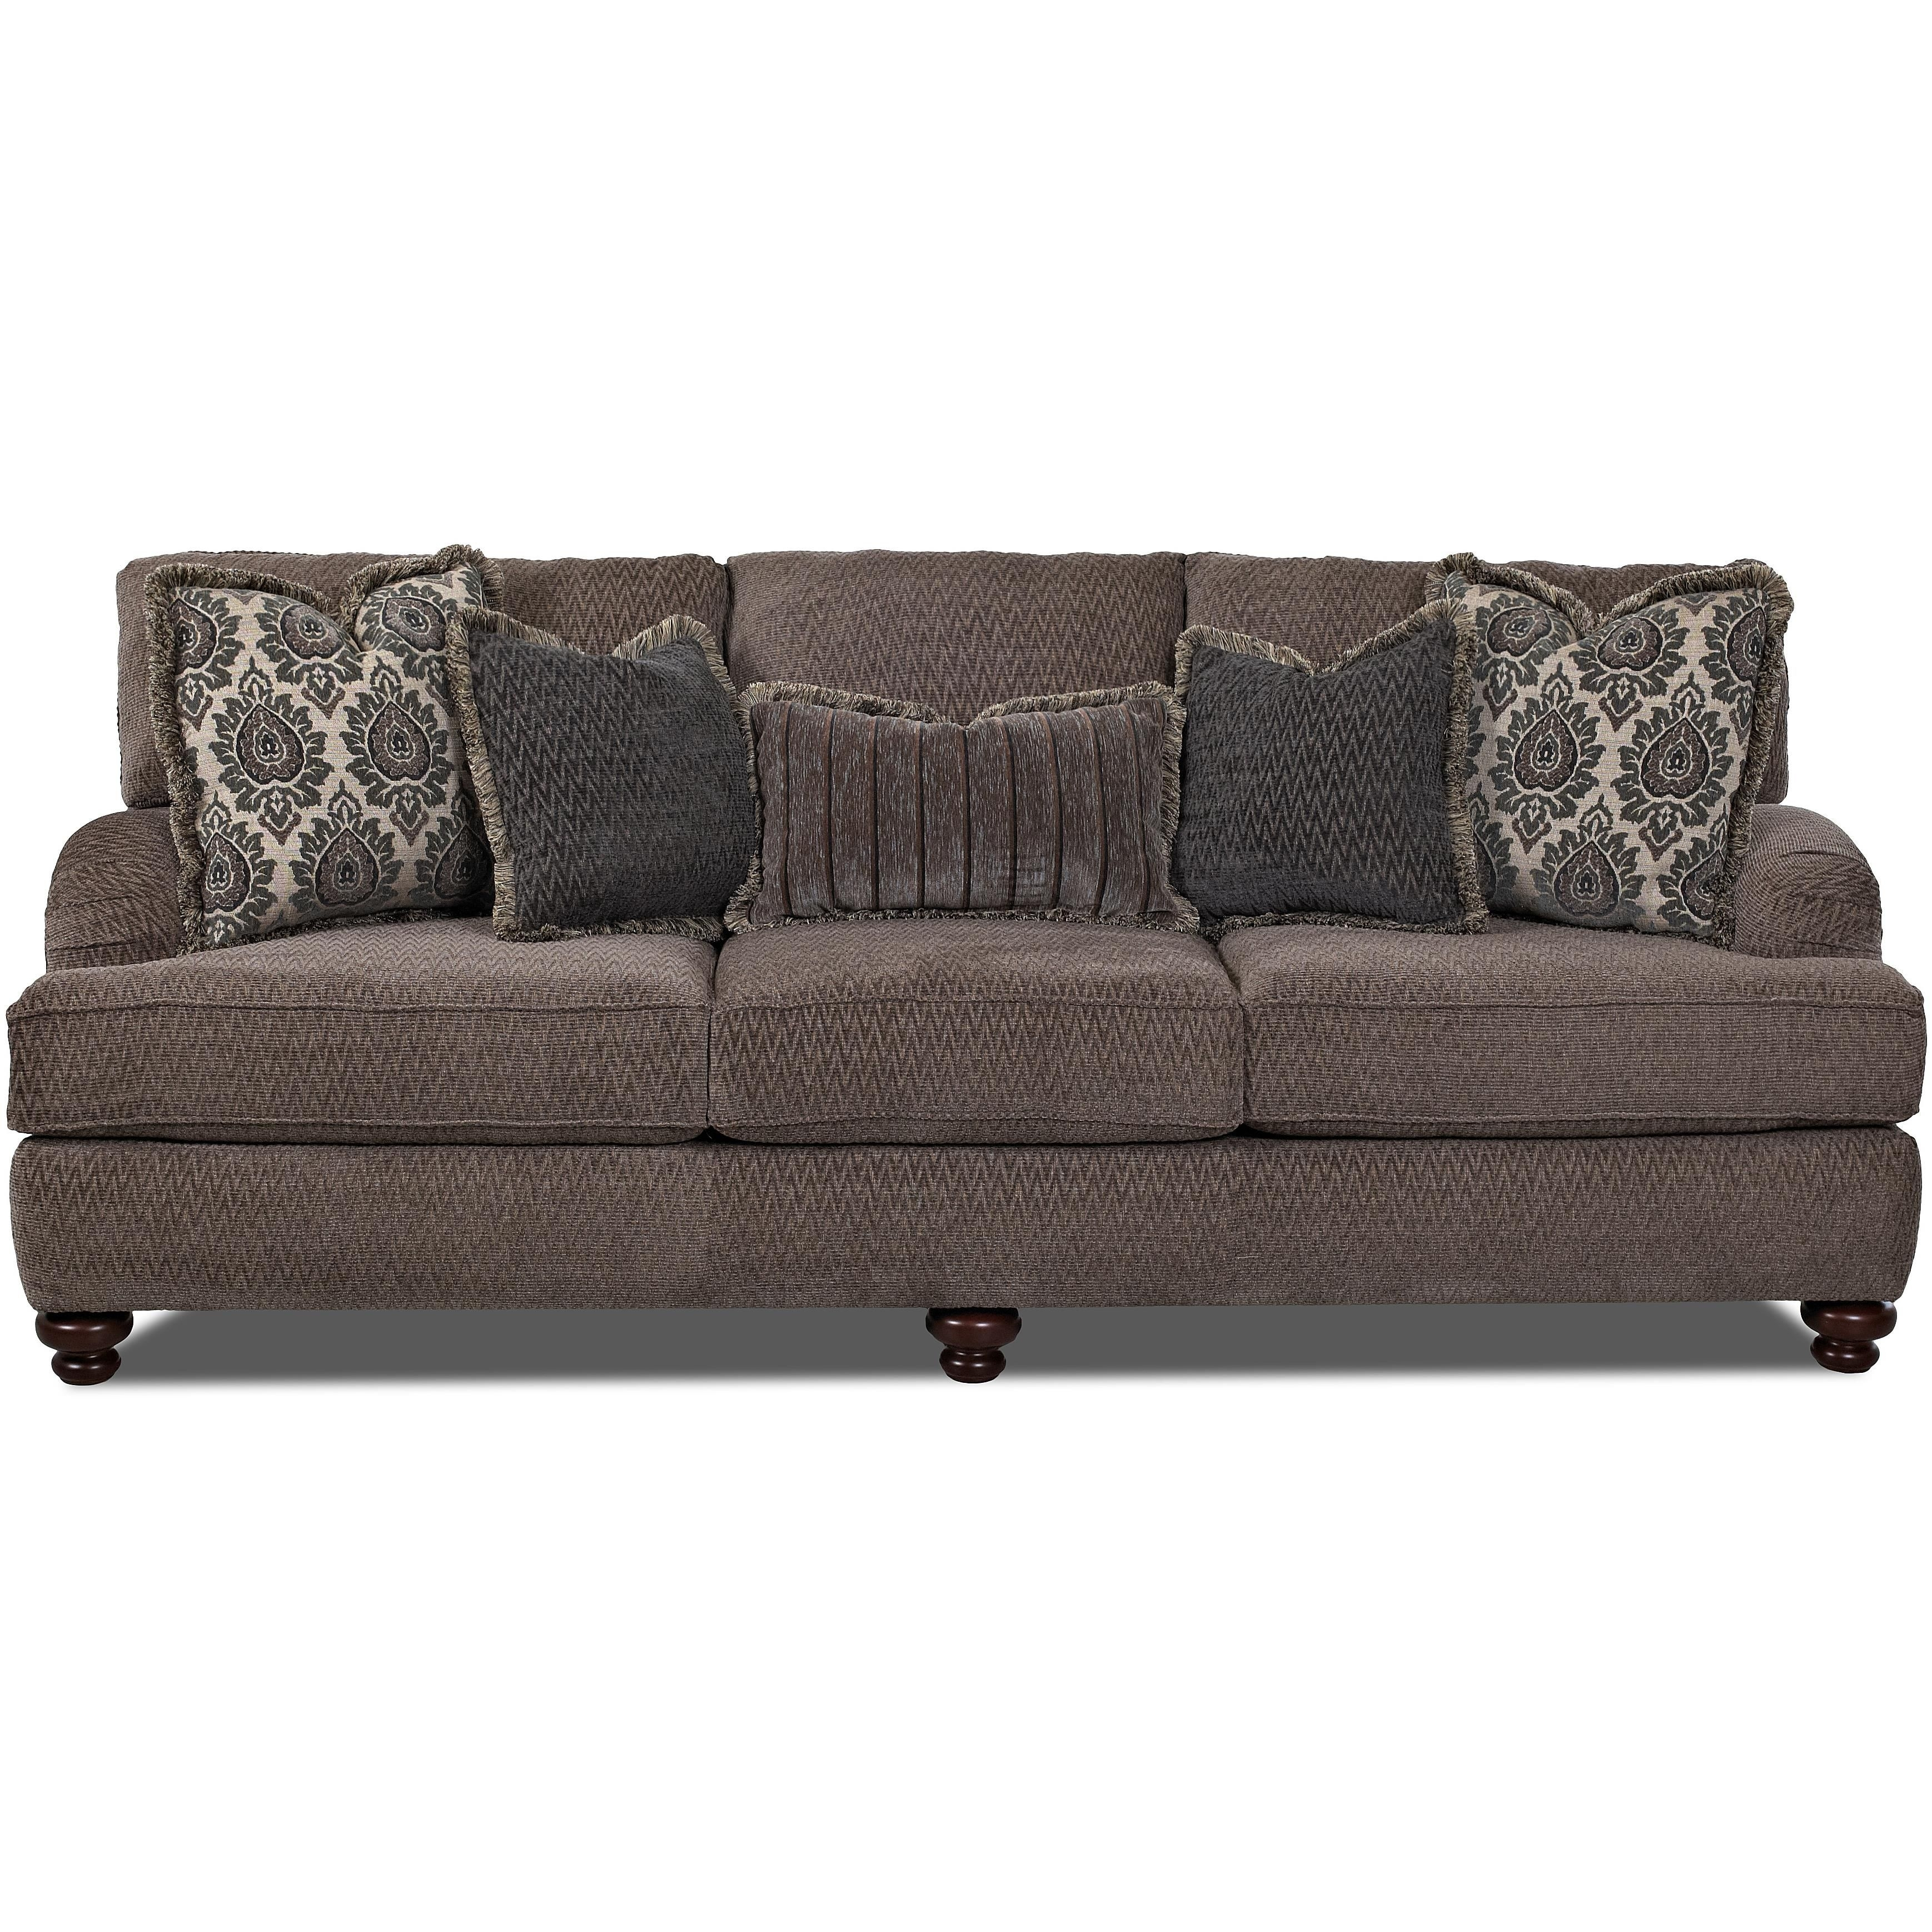 Pinlynea Redman On Living Room   Pinterest   Traditional, Living In Declan 3 Piece Power Reclining Sectionals With Right Facing Console Loveseat (View 4 of 25)